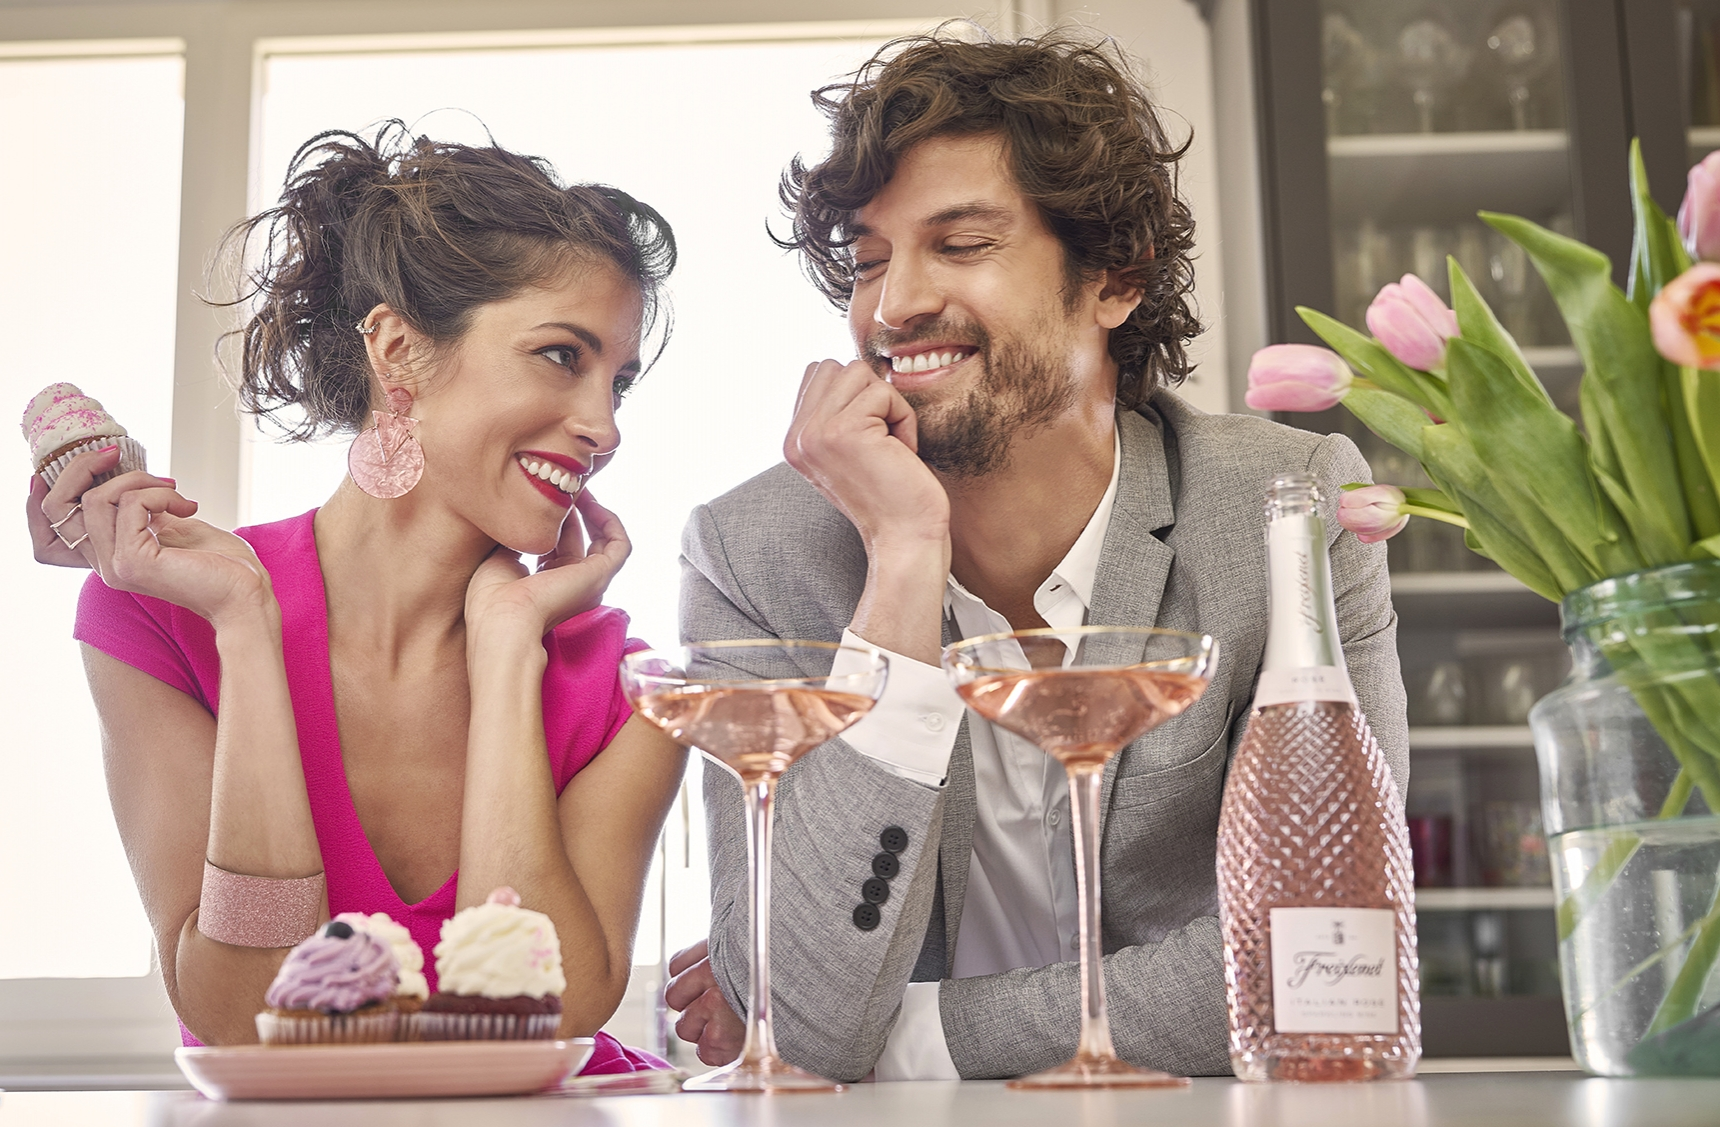 Freixenet's collaborative marketing campaign